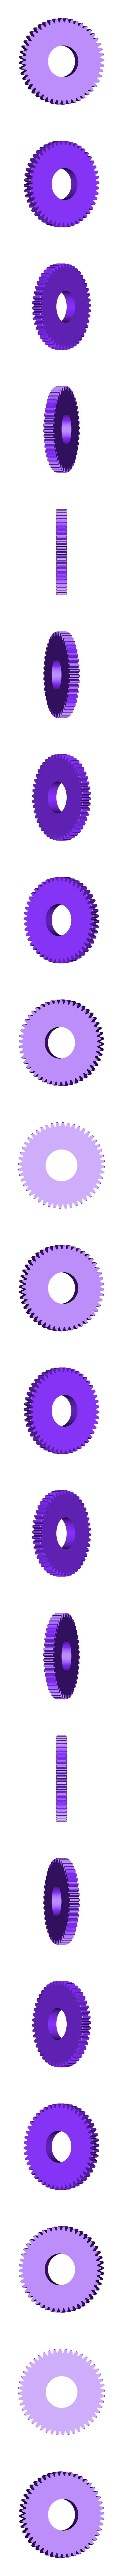 central-gearB.stl Download free STL file Mechnolia • 3D printing template, ChrisBobo